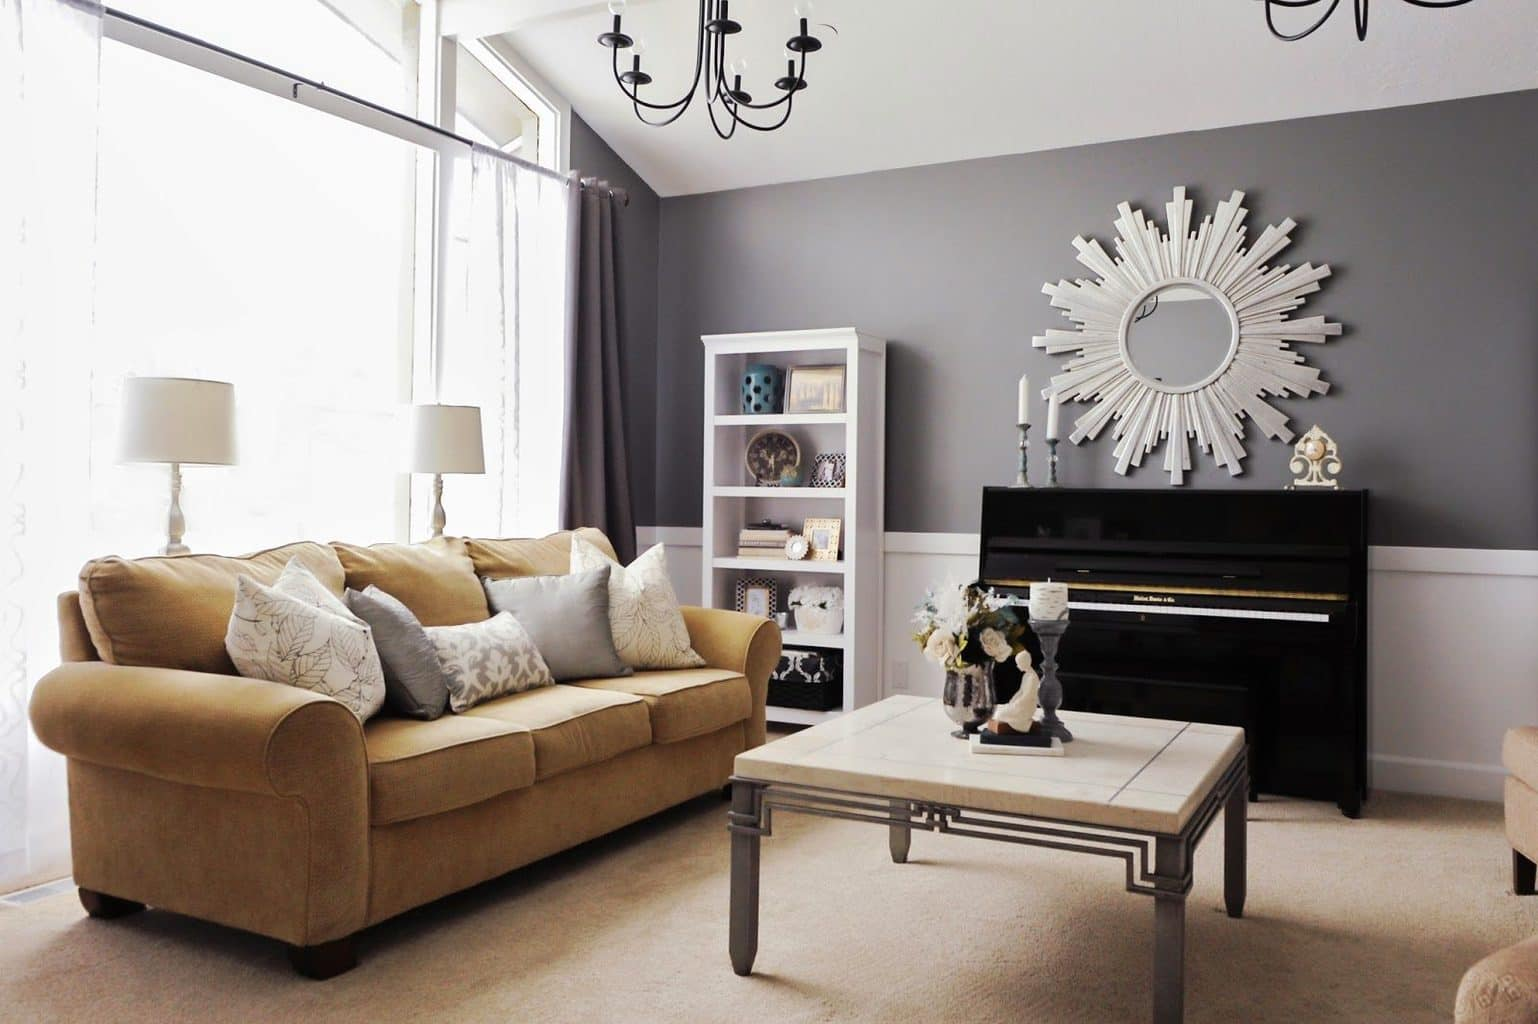 Upright Piano Livingroom